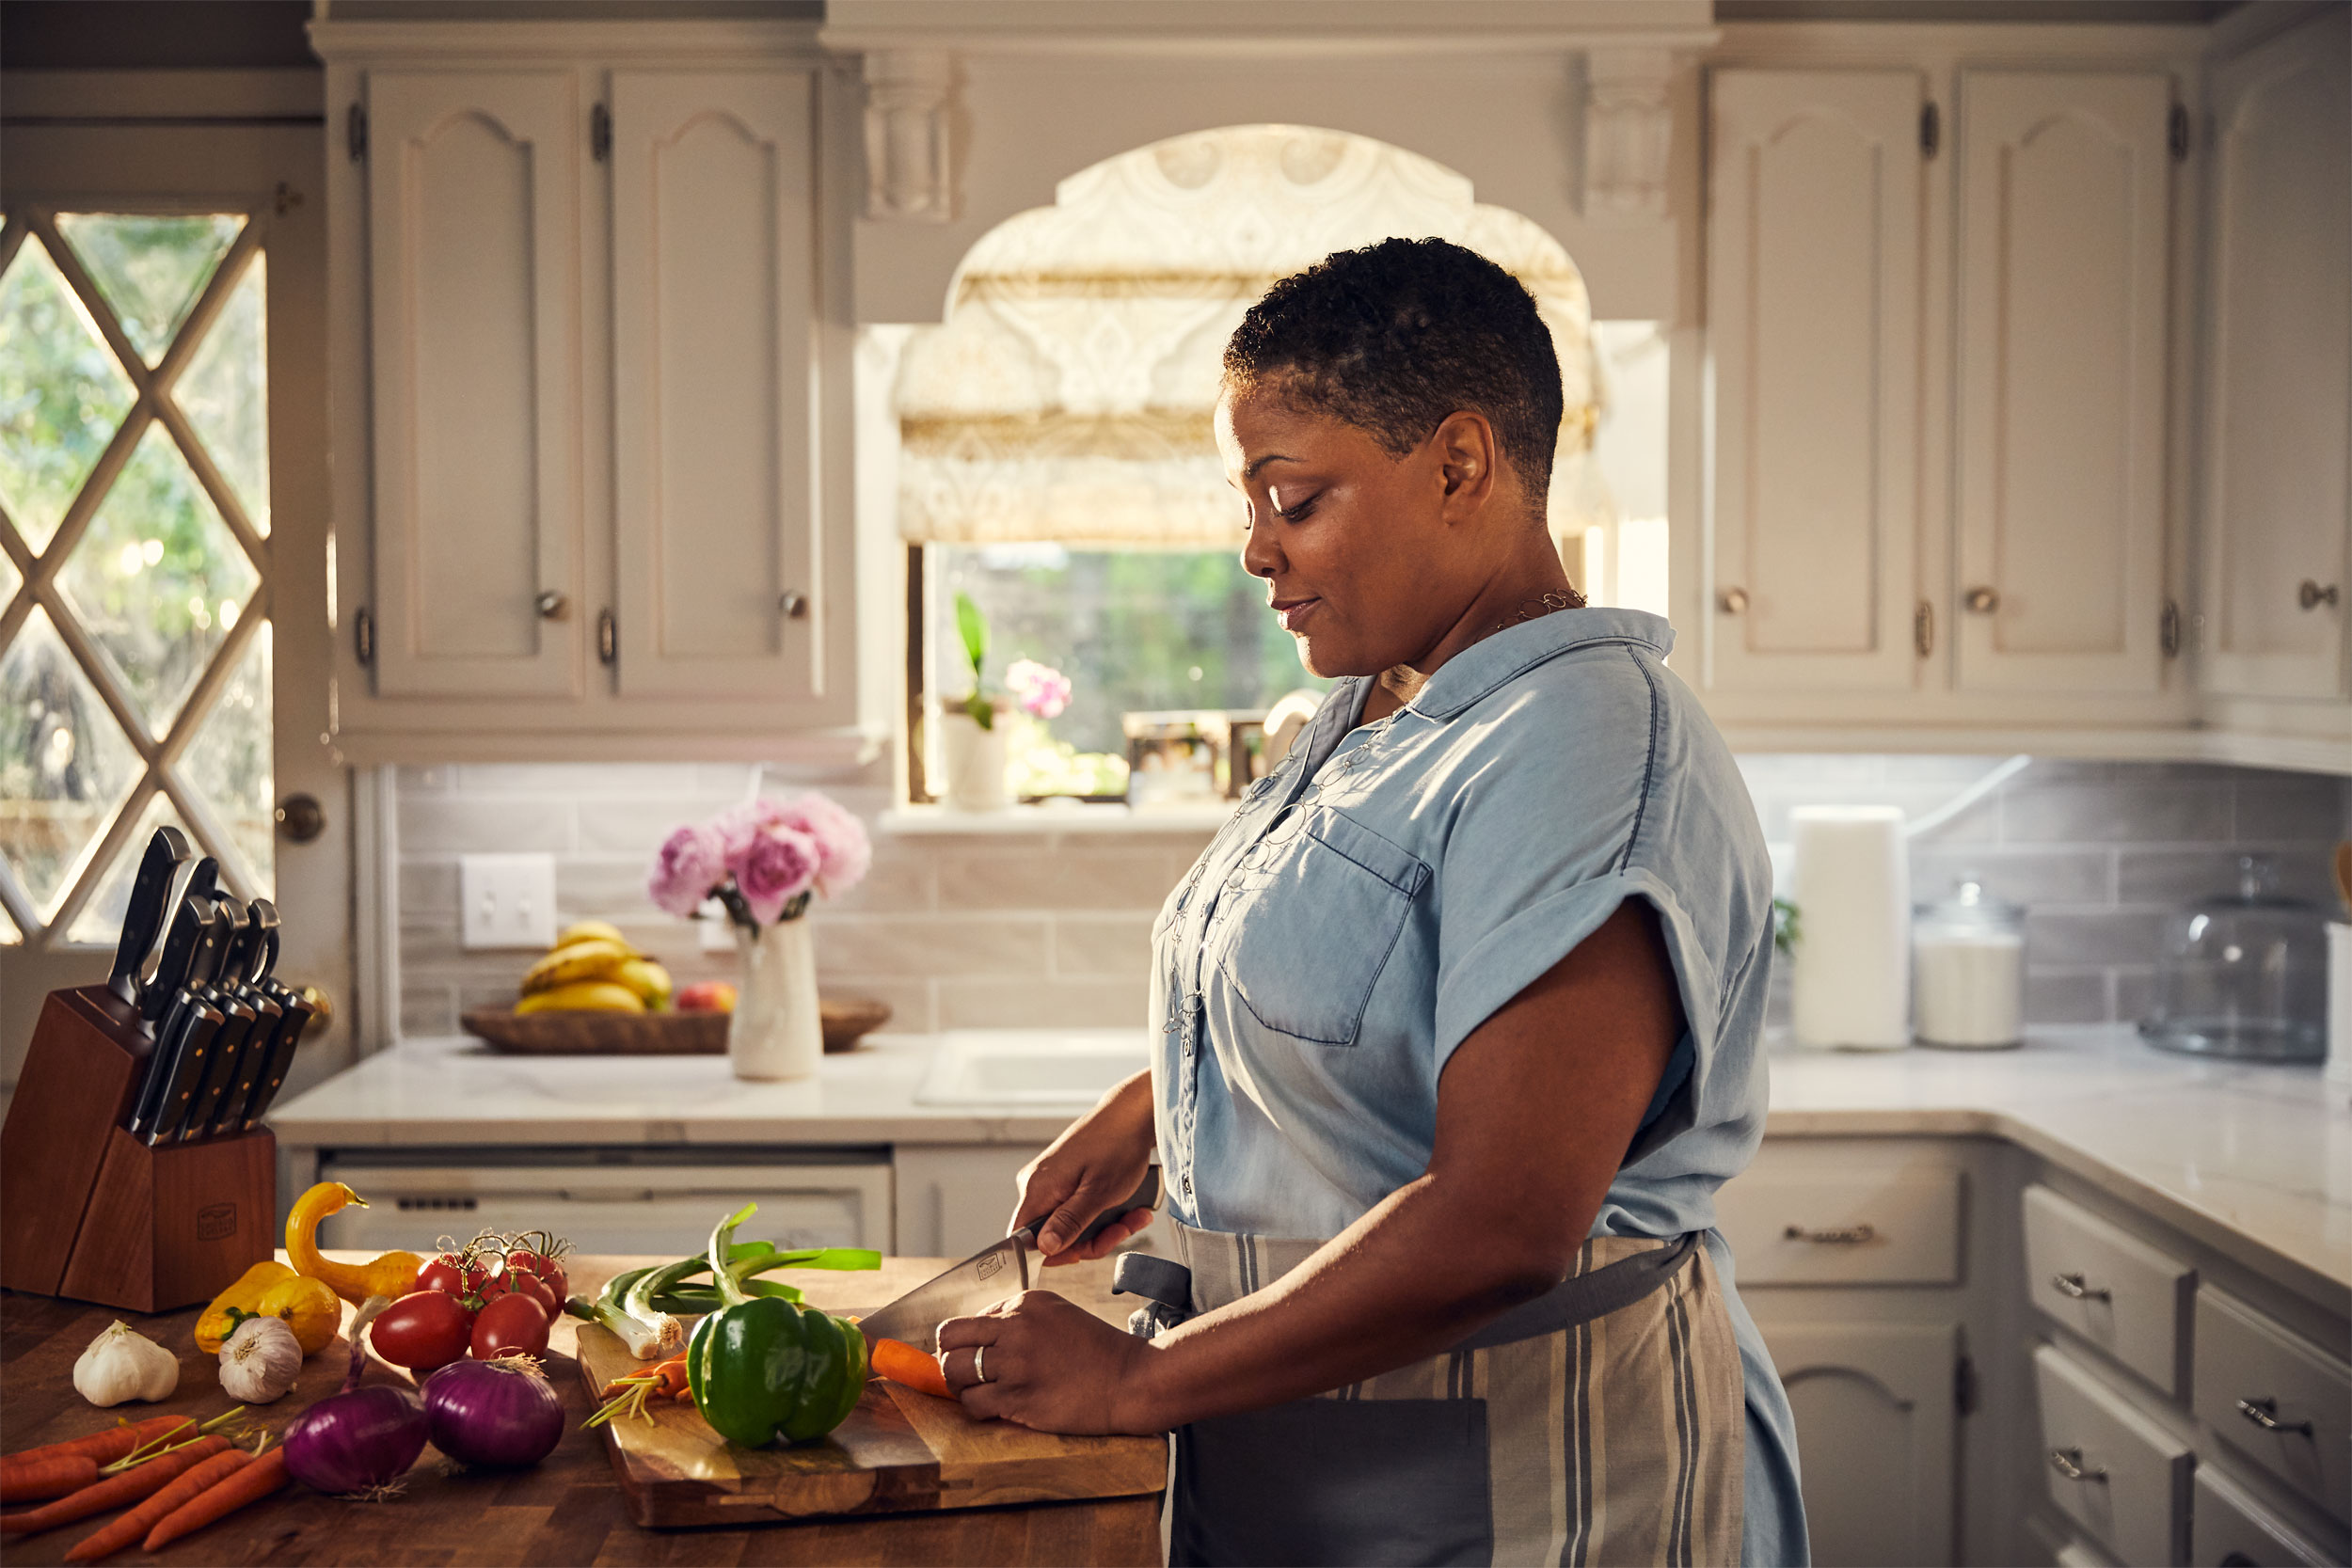 woman chopping vegetables in kitch, washington dc commercial photography